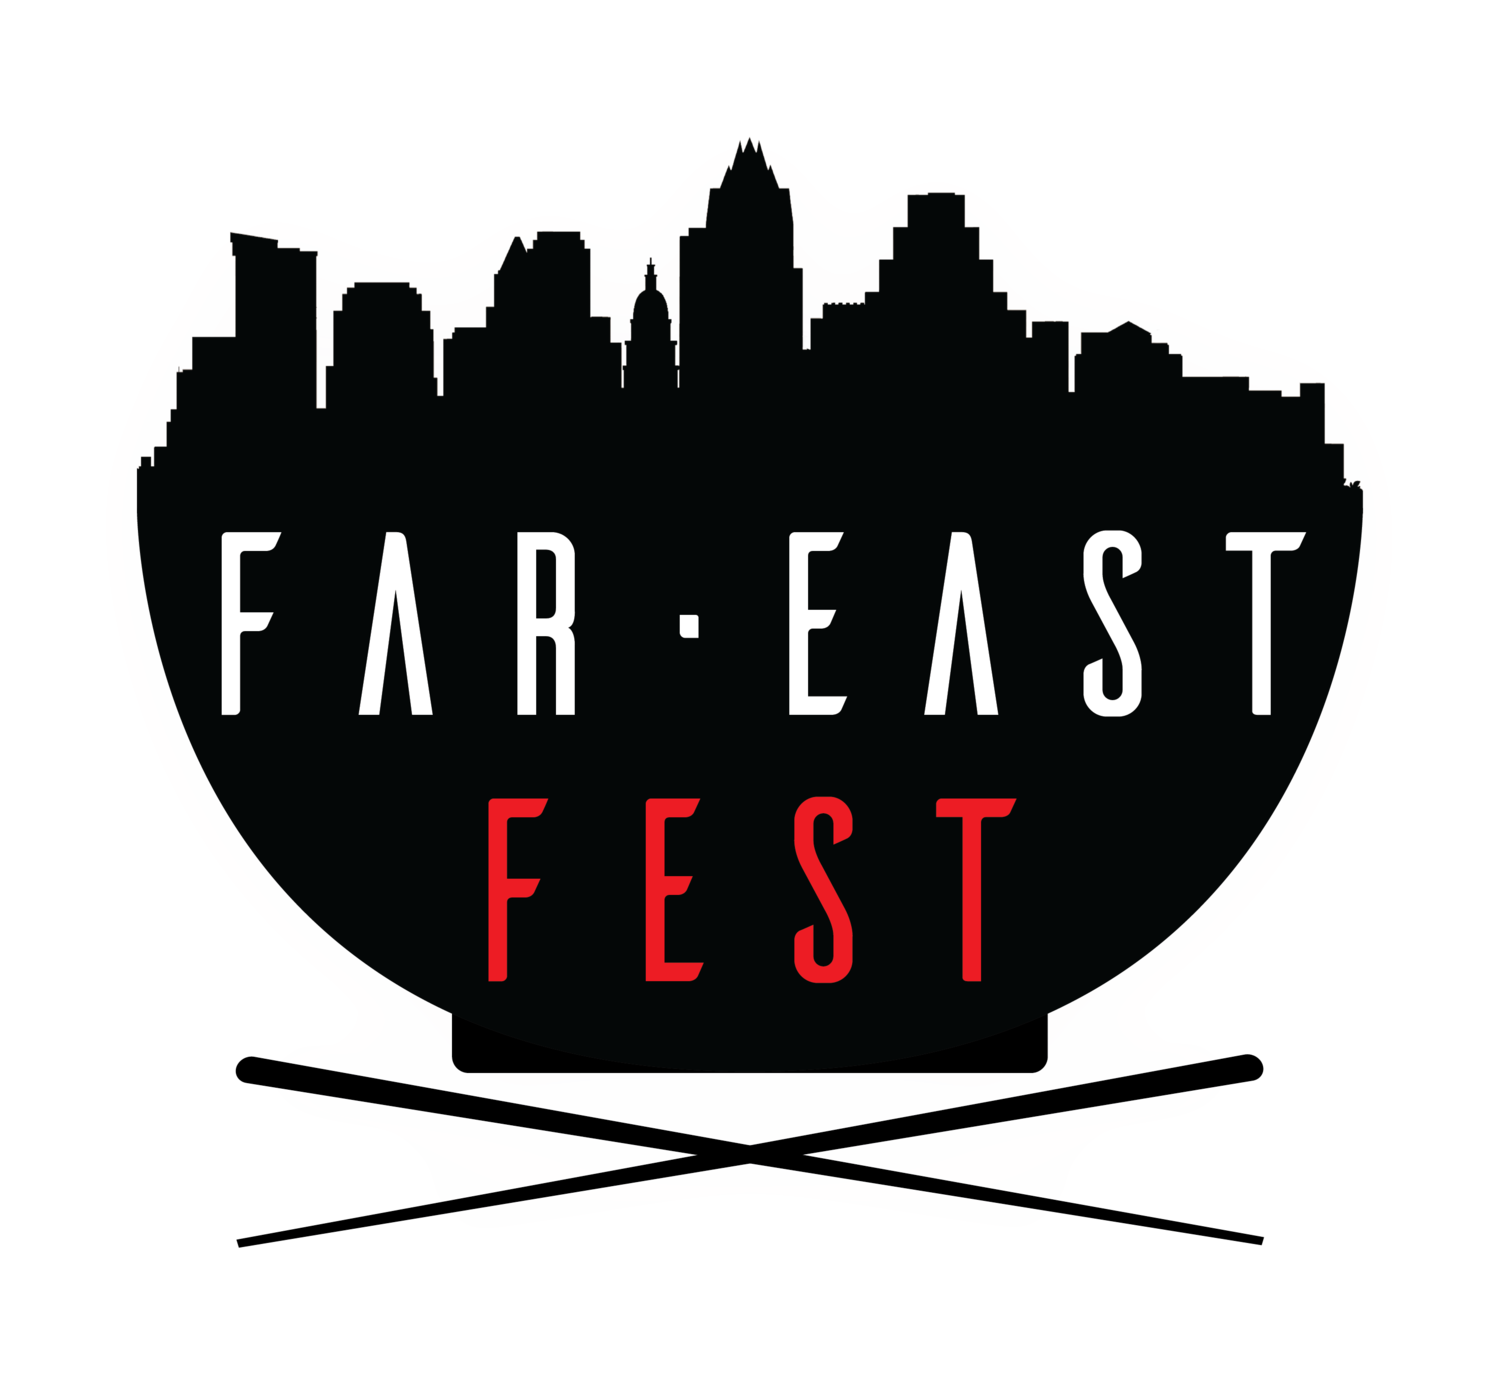 Far East Fest - Austin Asian Food Festival